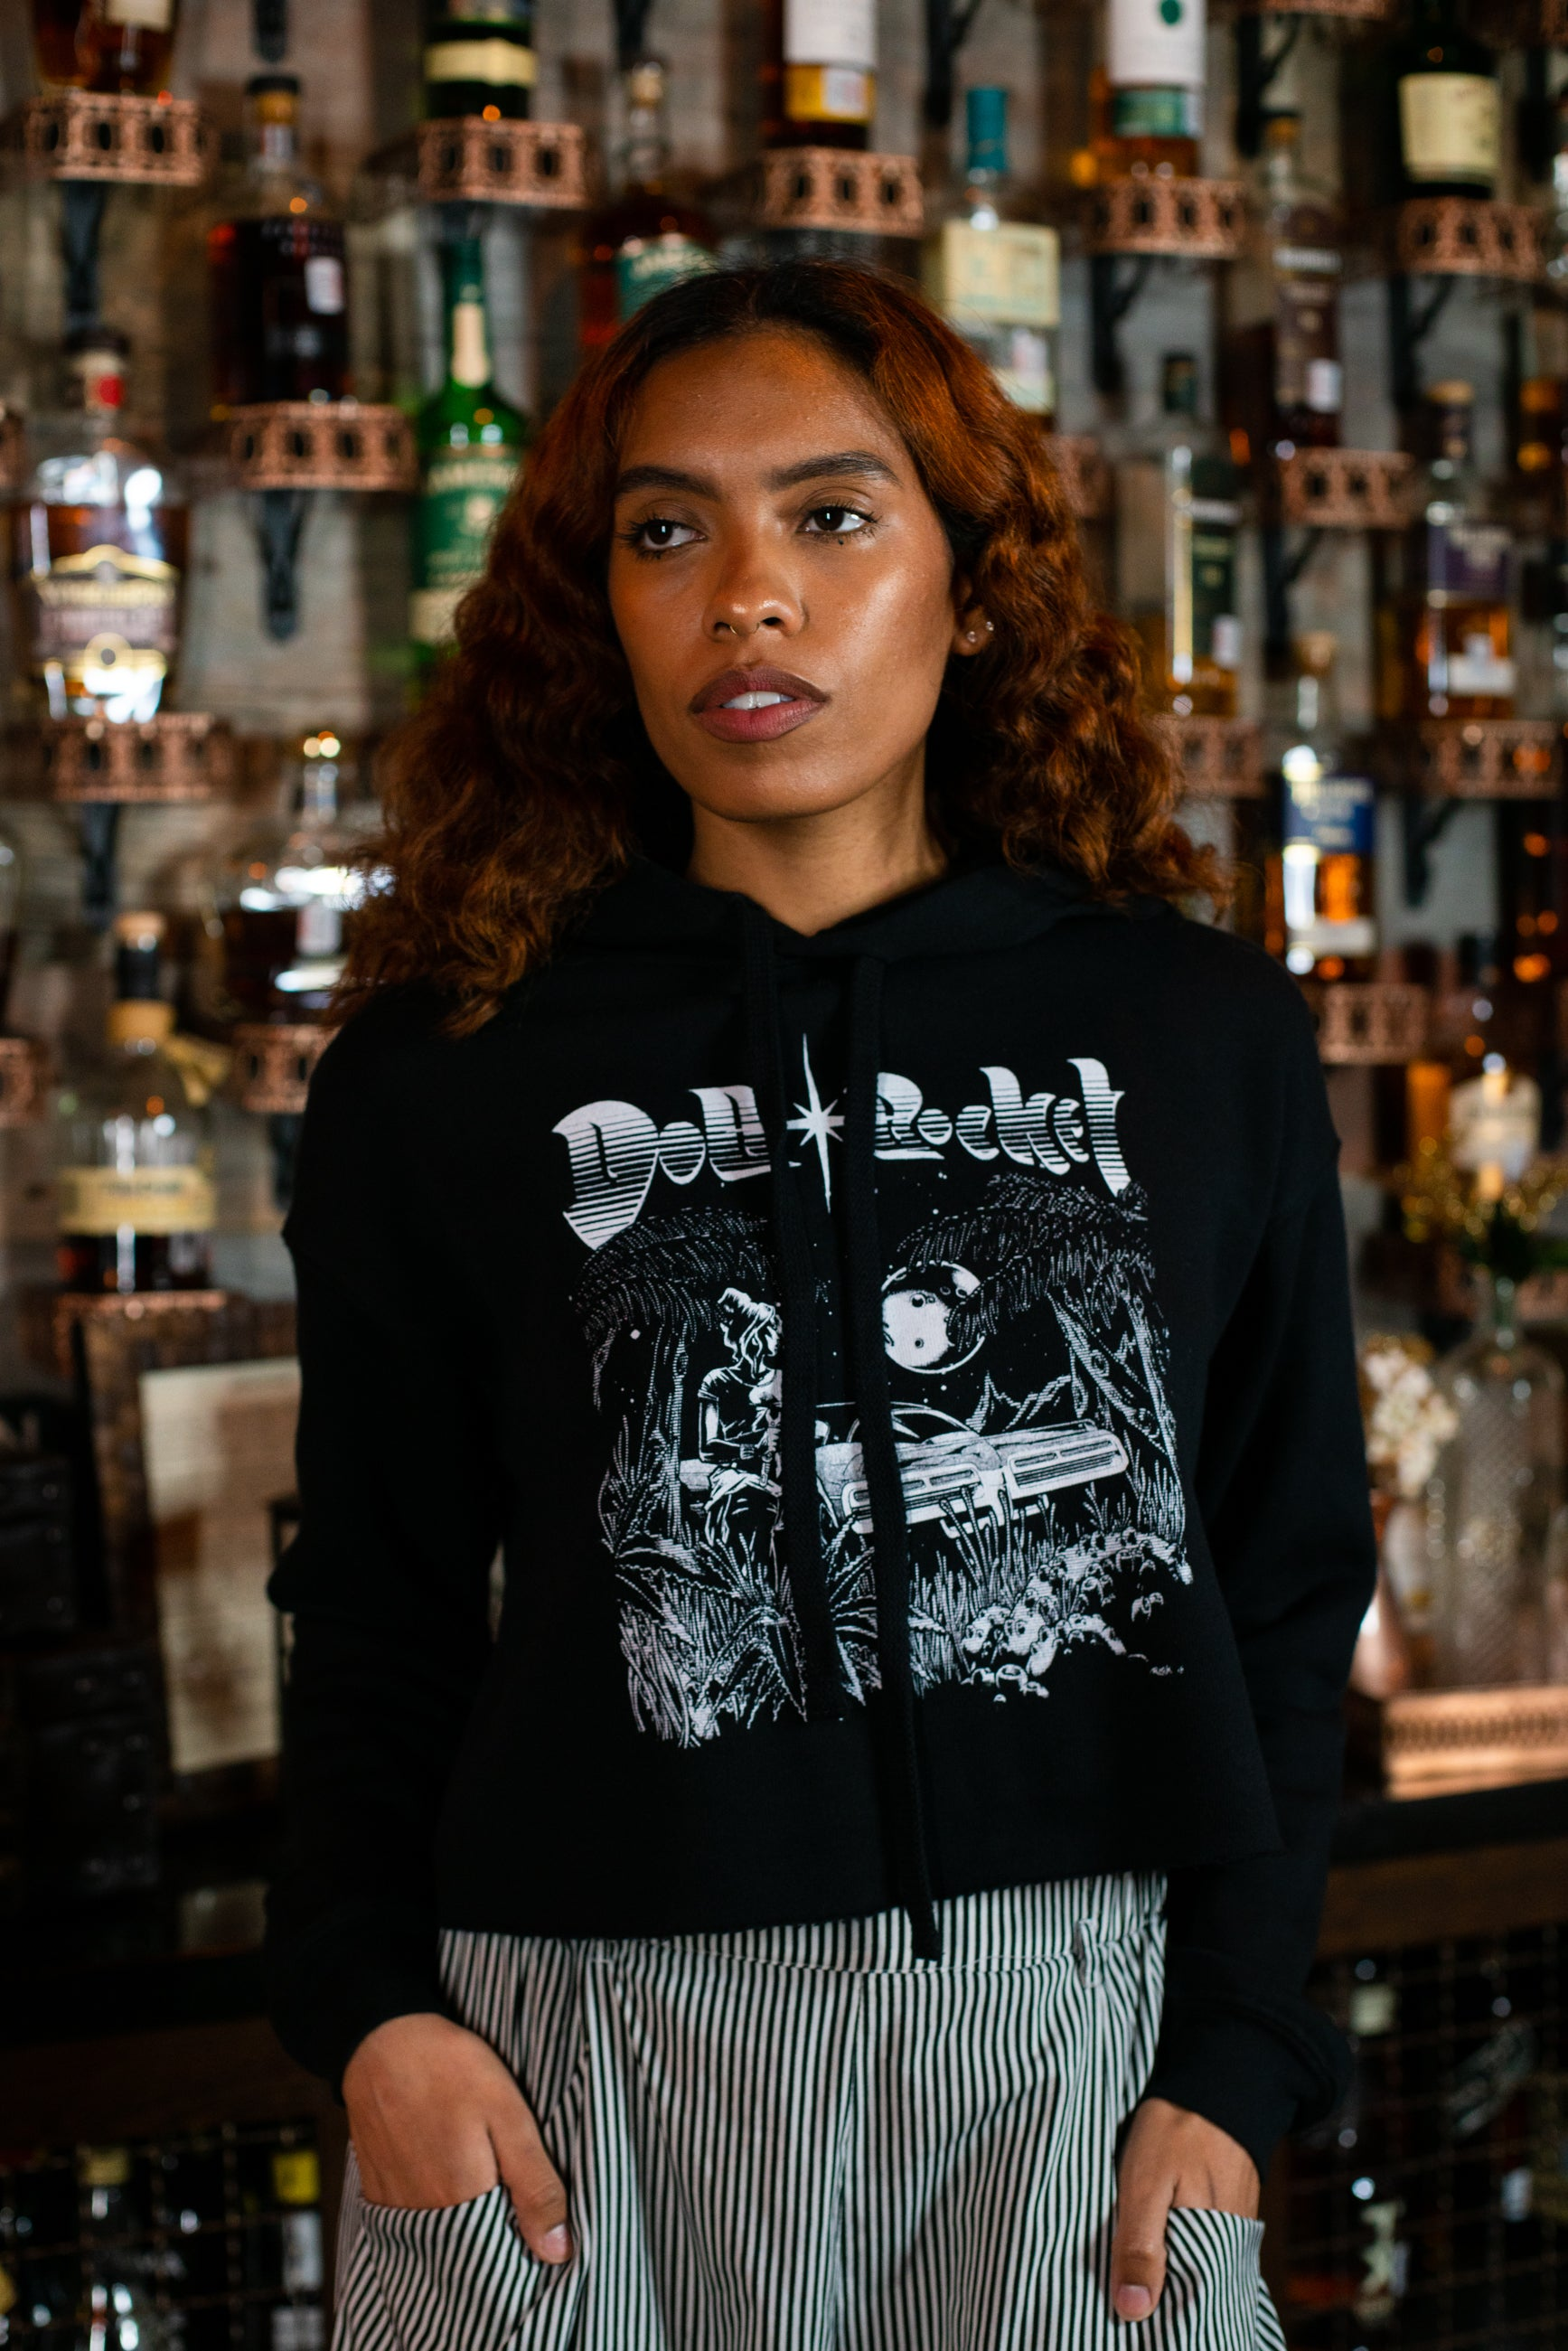 Doll + Rocket Women's Sweatshirt